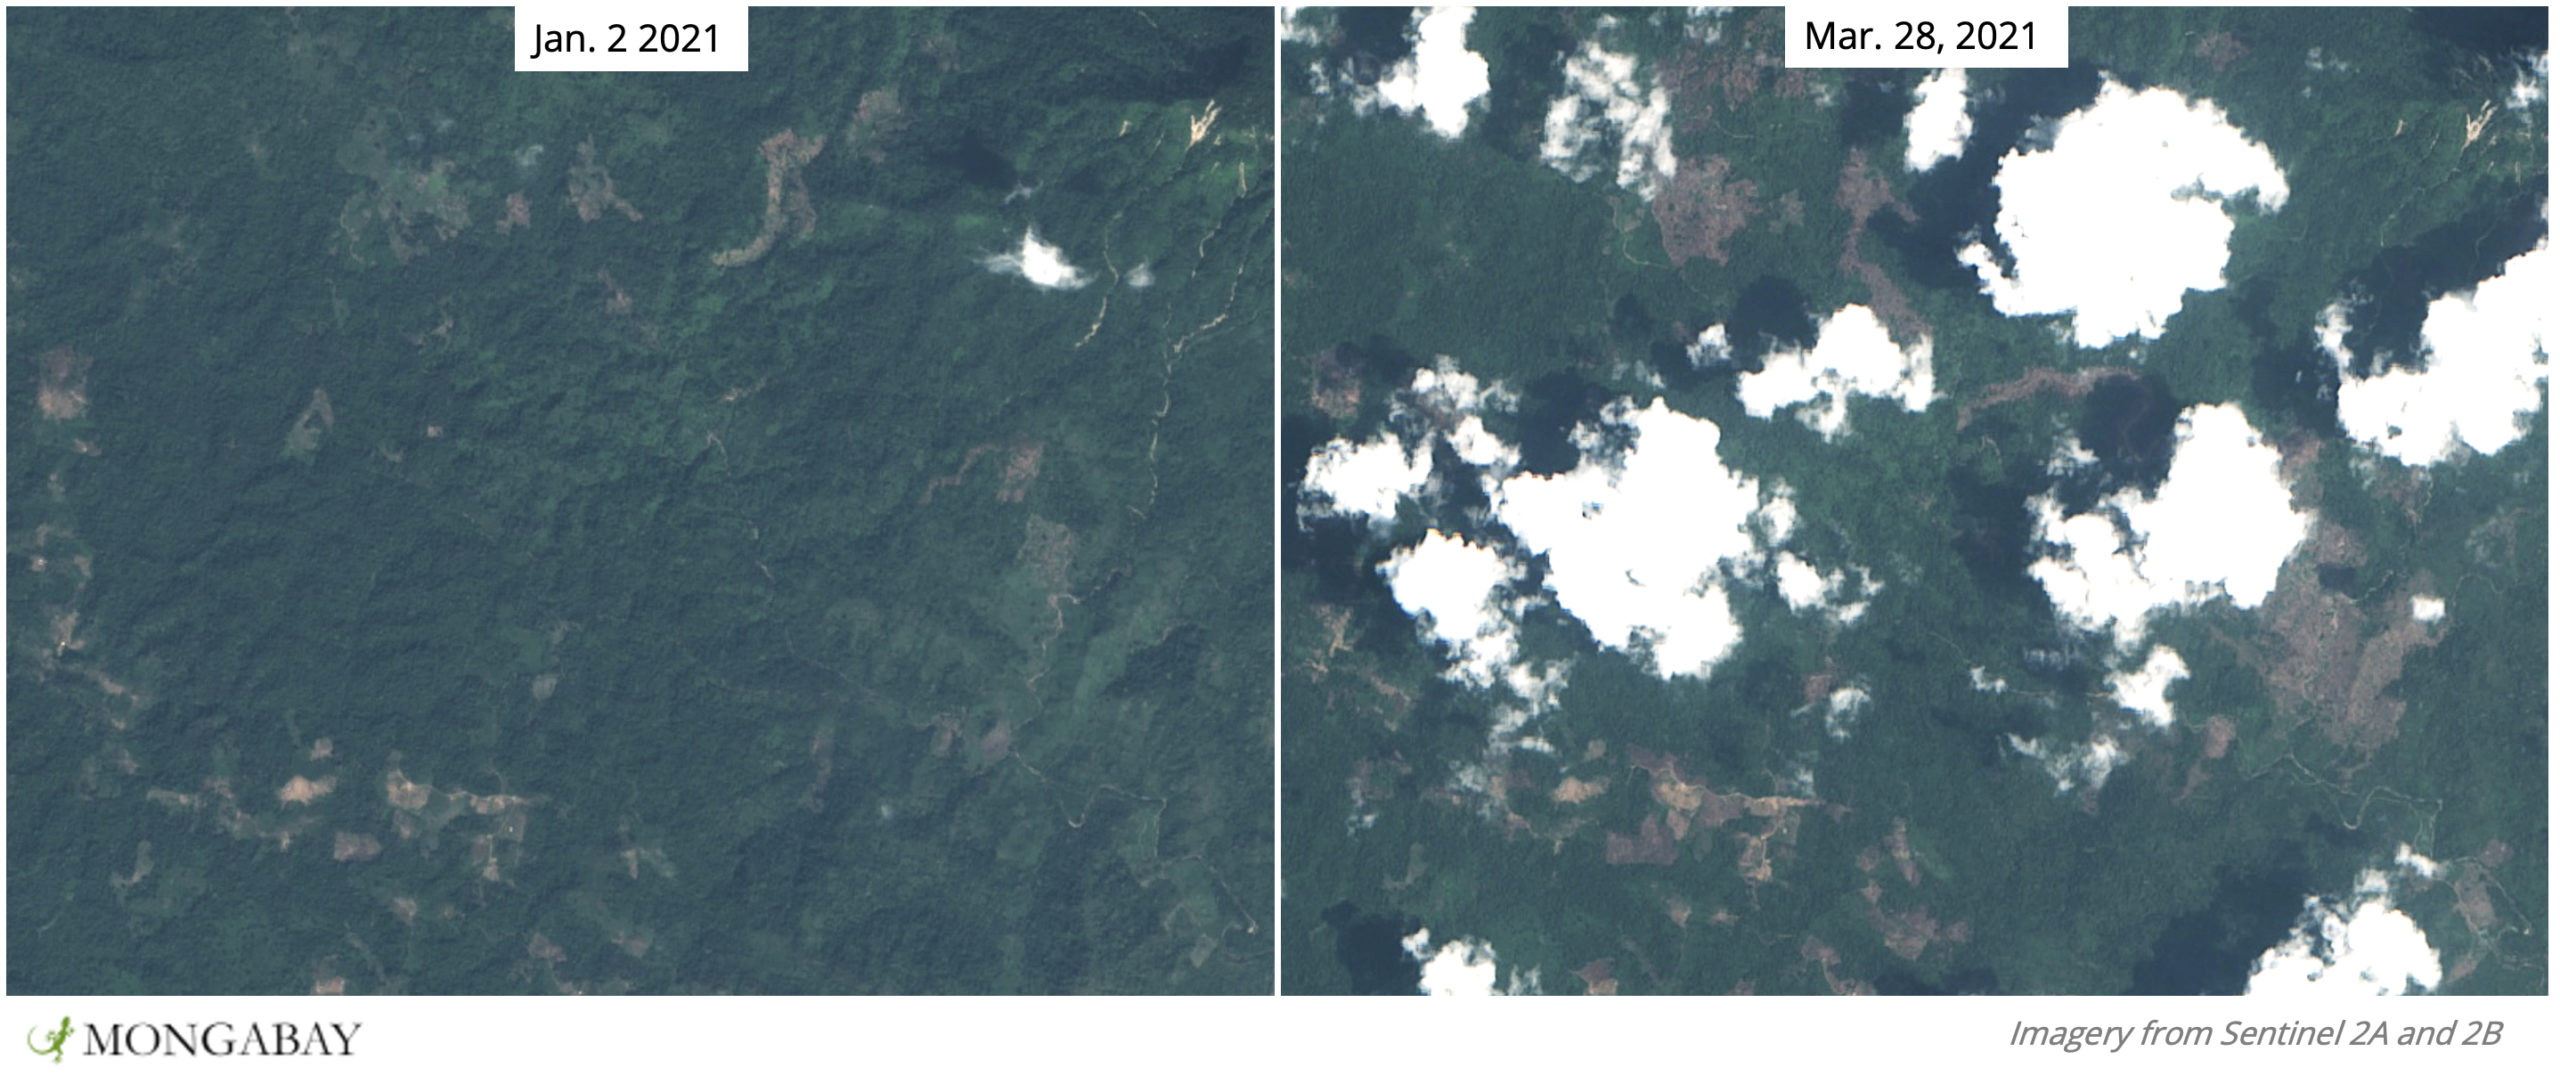 Recent deforestation inside Phnom Samkos Wildlife Sanctuary.